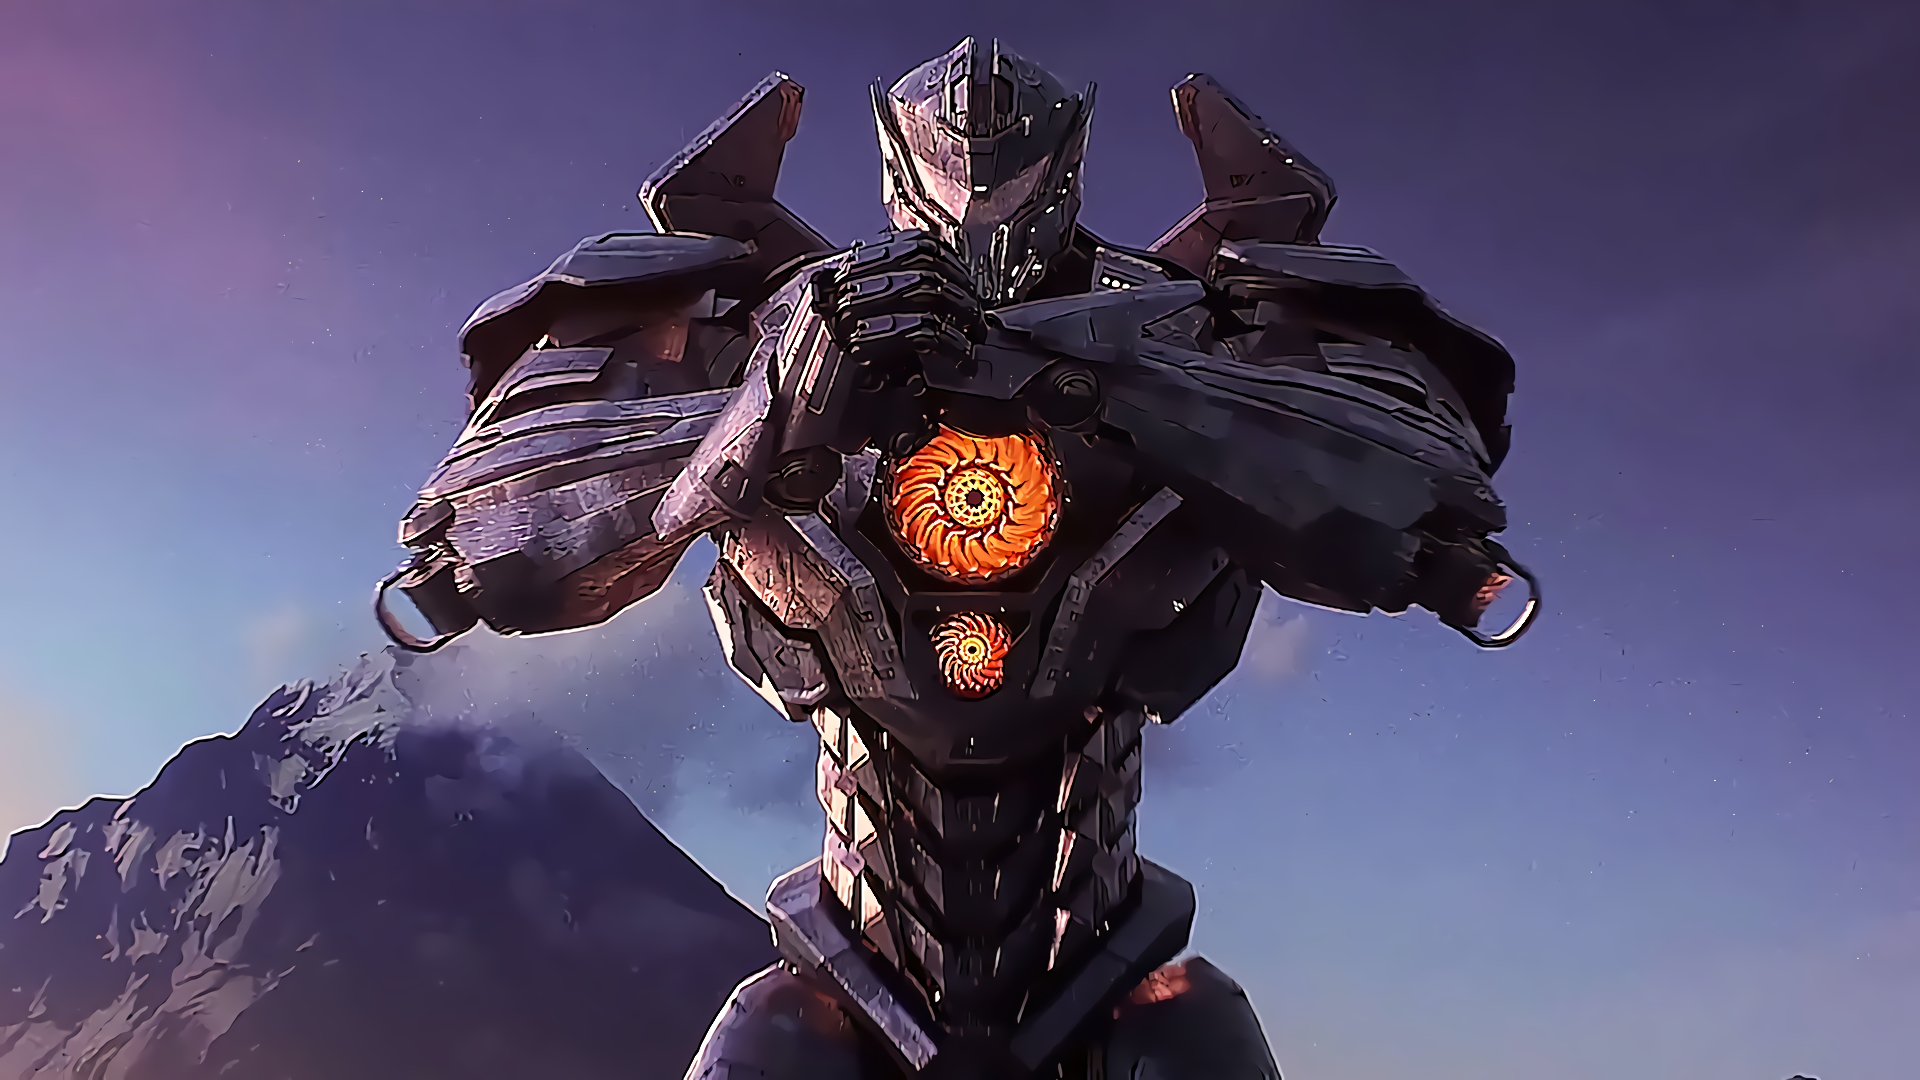 Pacific Rim Uprising Wallpapers HD Collection for Desktop